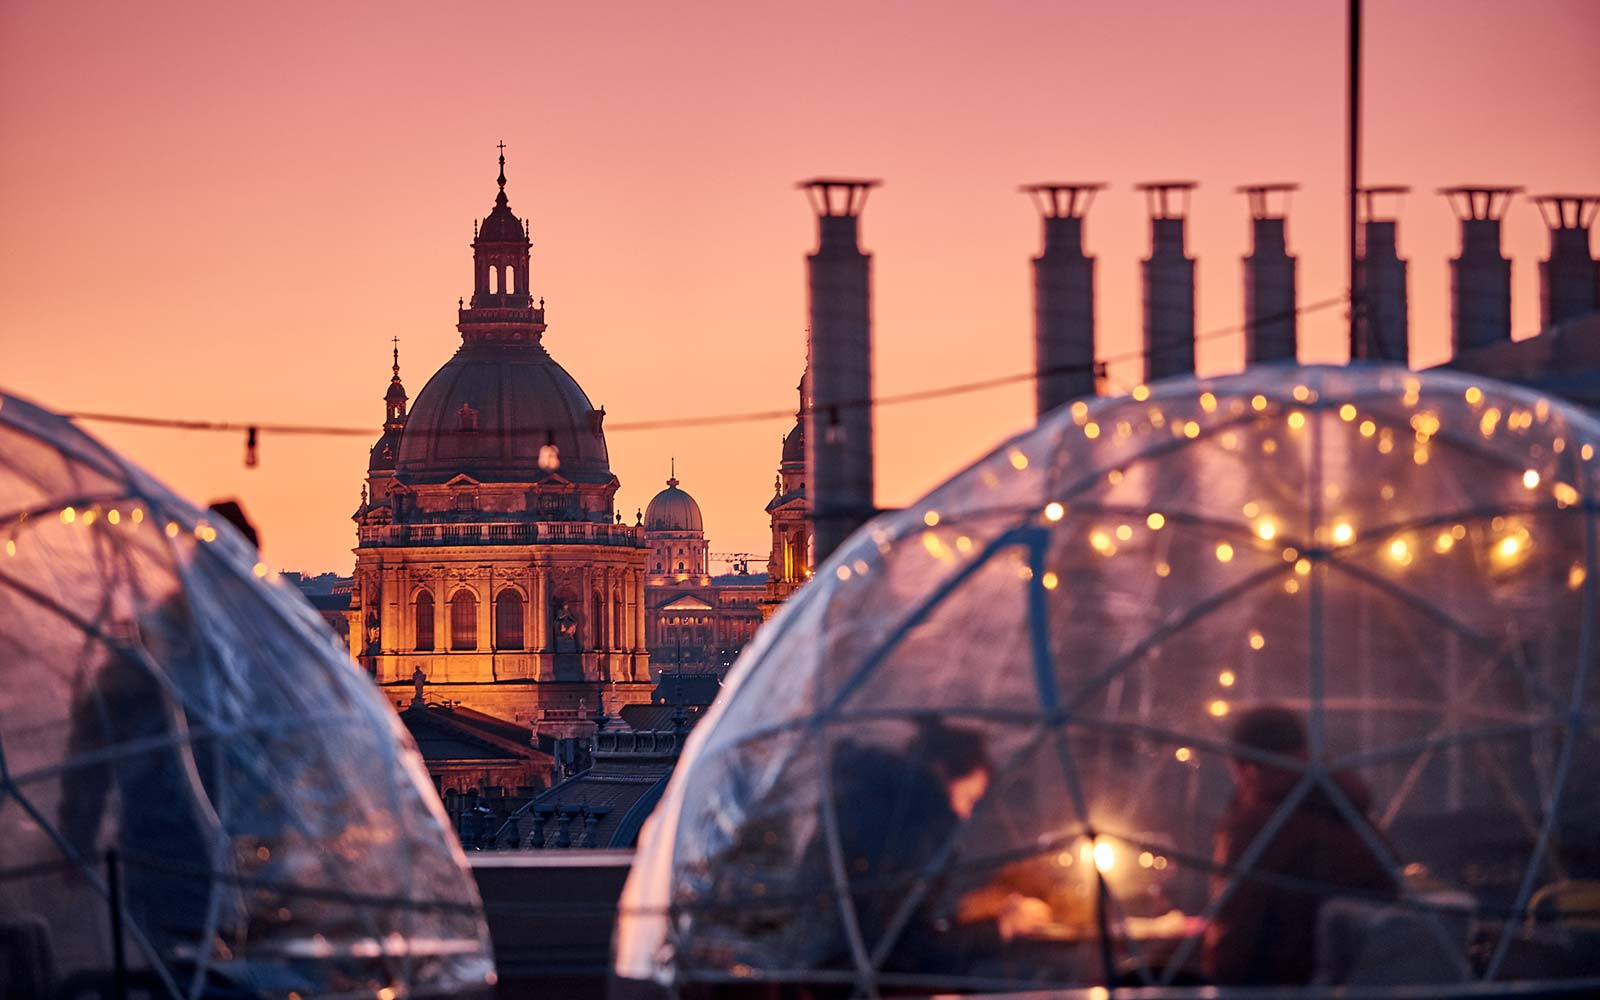 Enjoy a Drink in a Rooftop Igloo at This Bar in Budapest